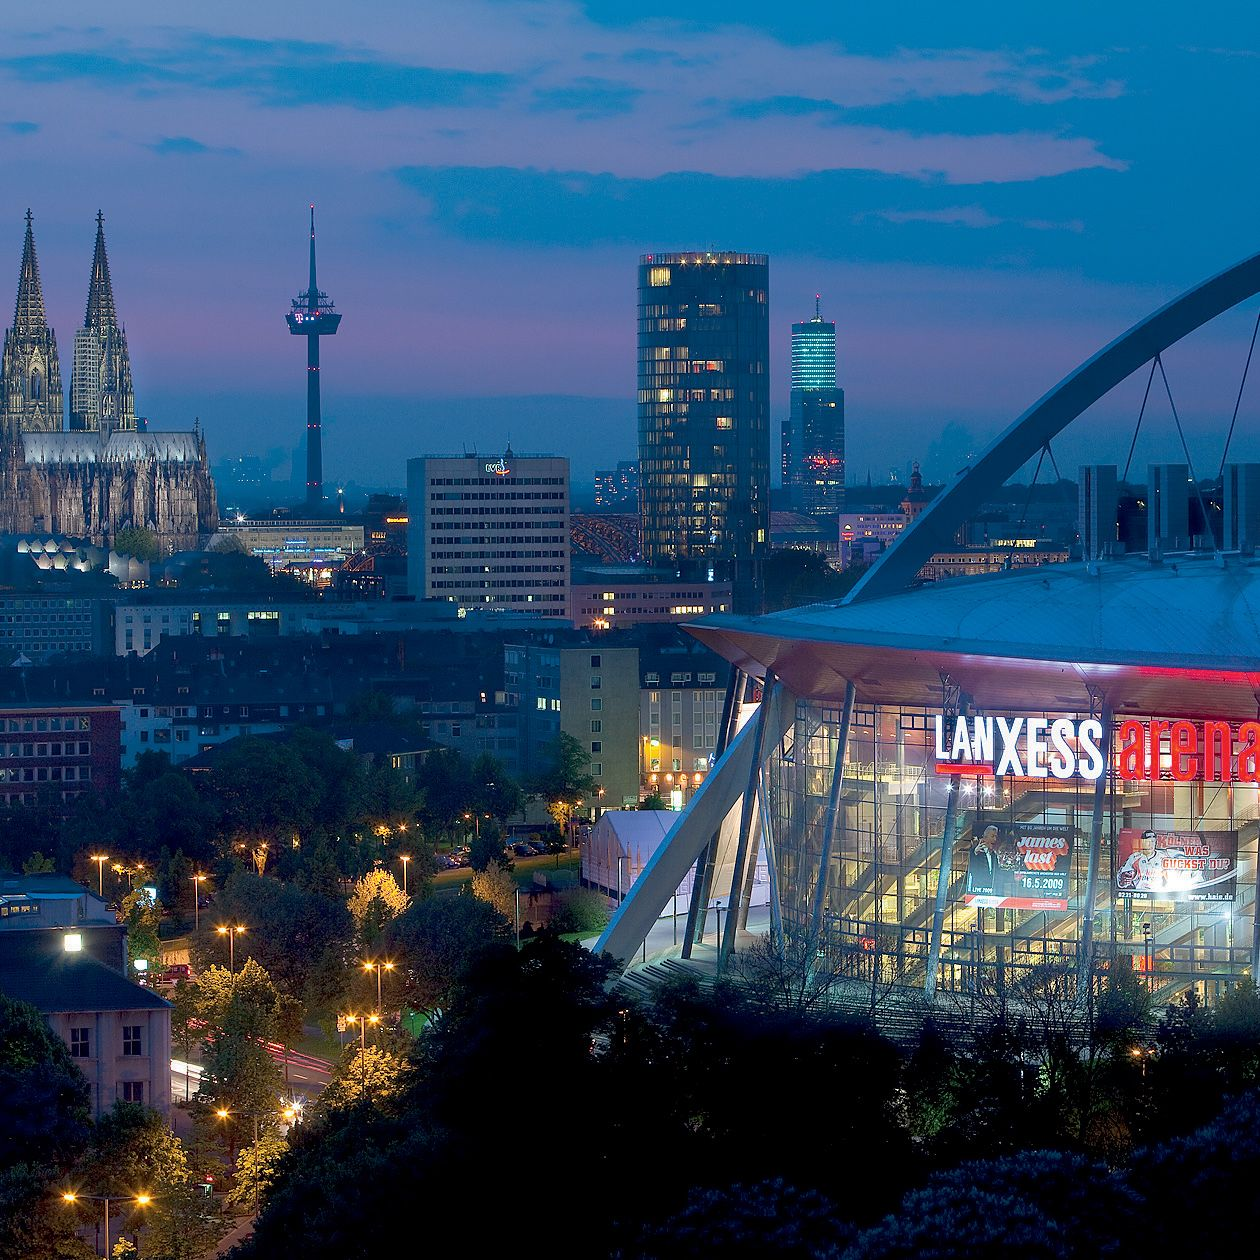 LANXESS arena with a place among the world's best